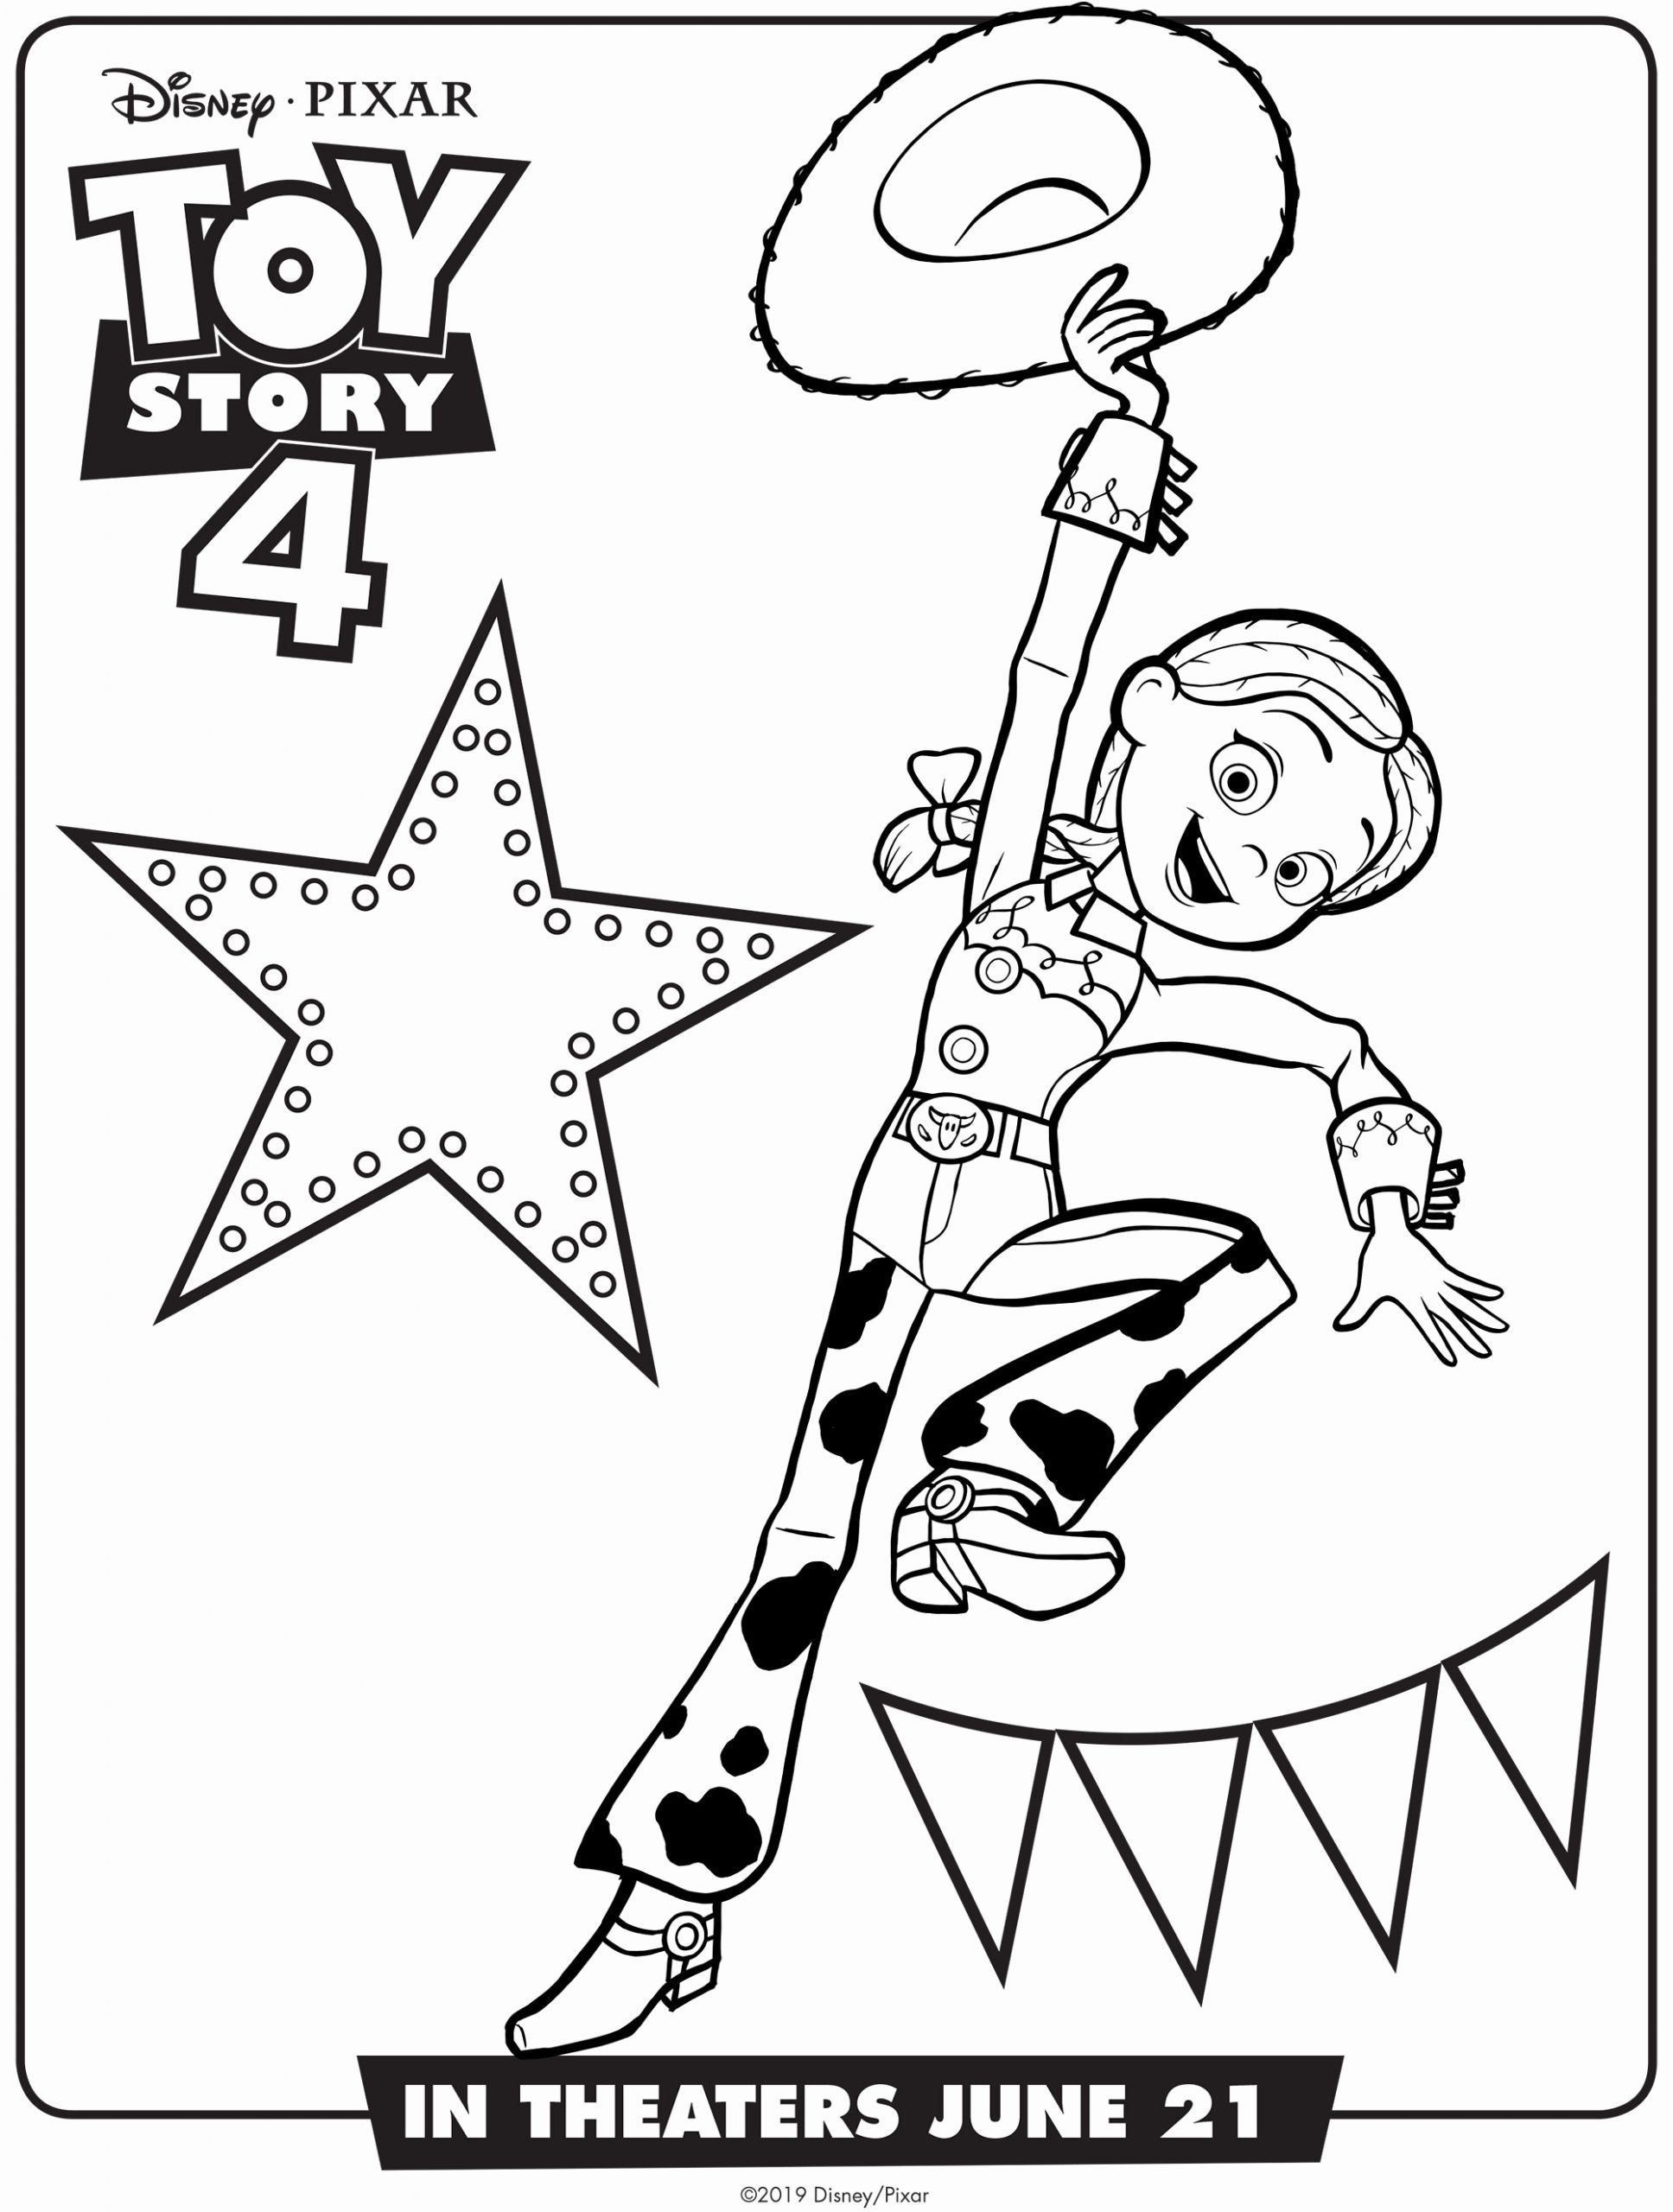 Coloring Toy Story 4 En 2020 Paginas Para Colorear Disney Toy